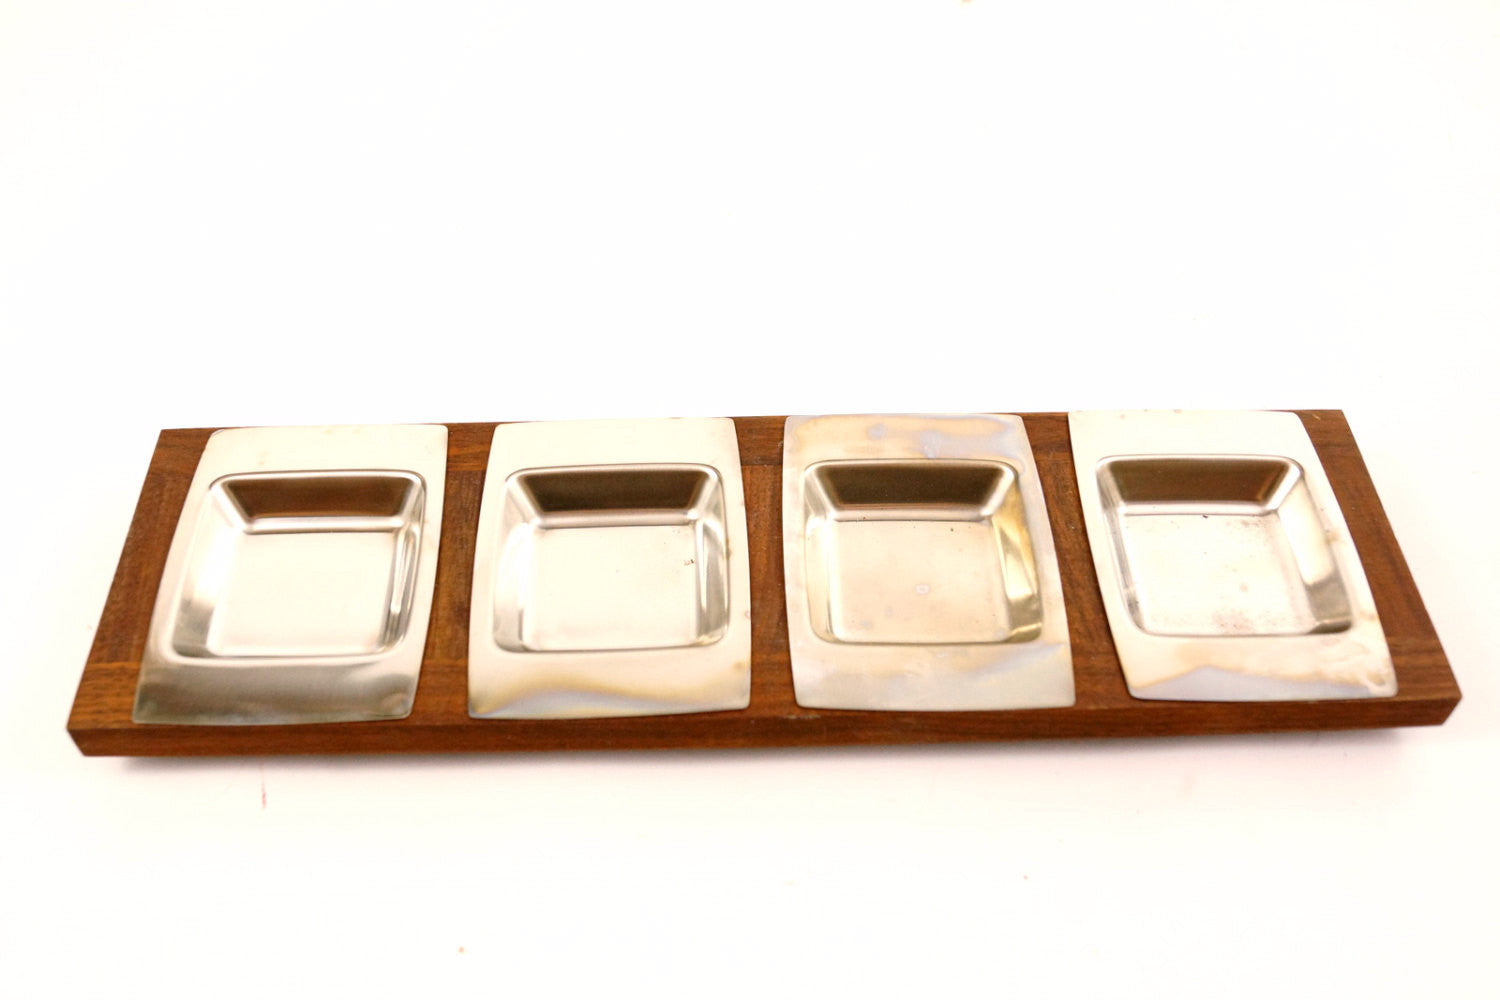 Vintage Stainless Steel And Wood Serving Tray Set, Condiment Or Relish Tray  (c.